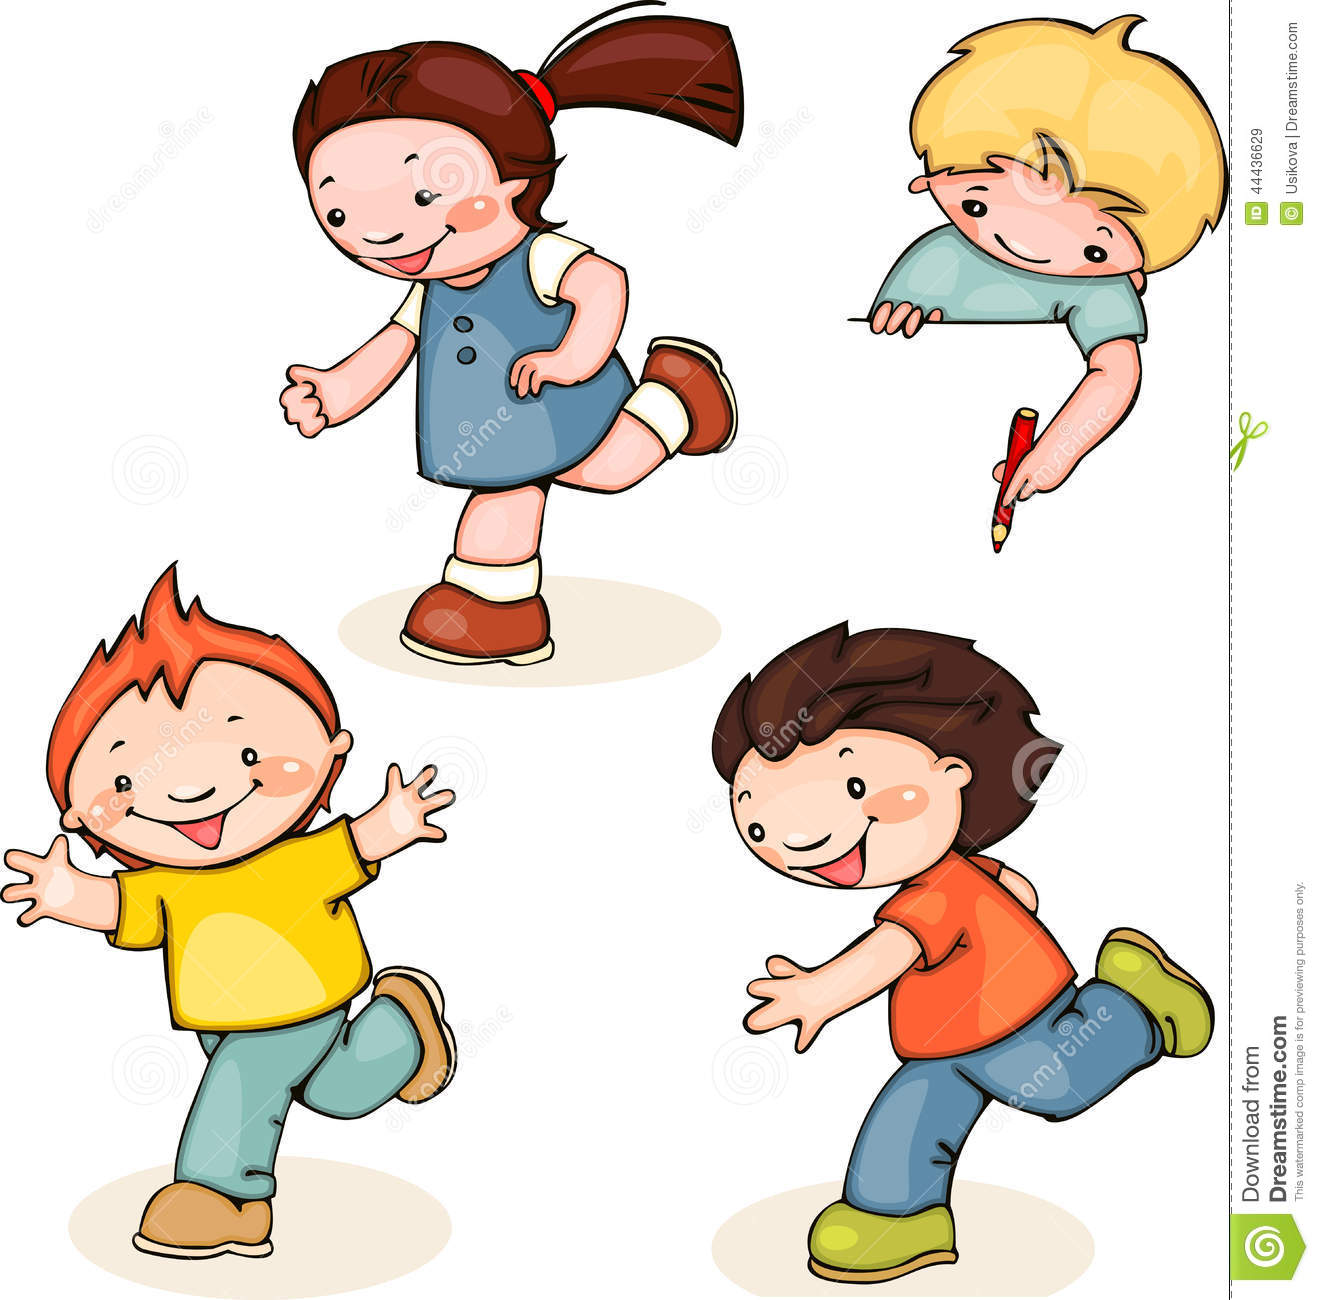 Race clipart child athletics Run%20clipart Clipart Clipart Art Images